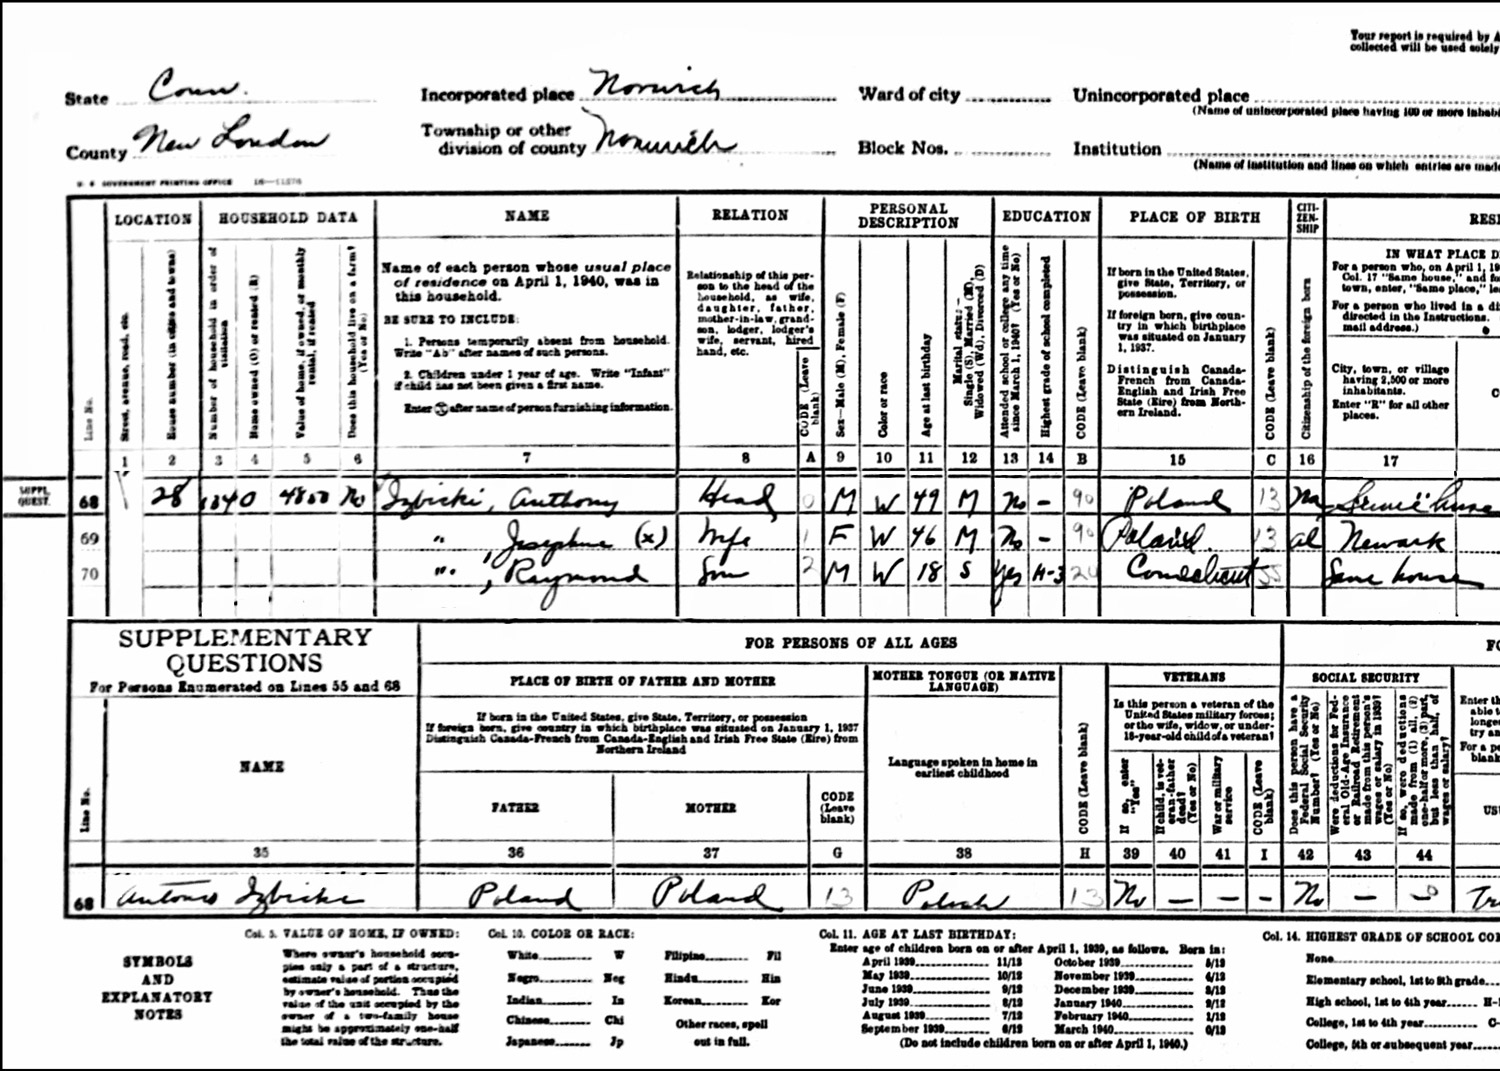 1940 US Federal Census Record for the Anthony Izbicki Household (Left)